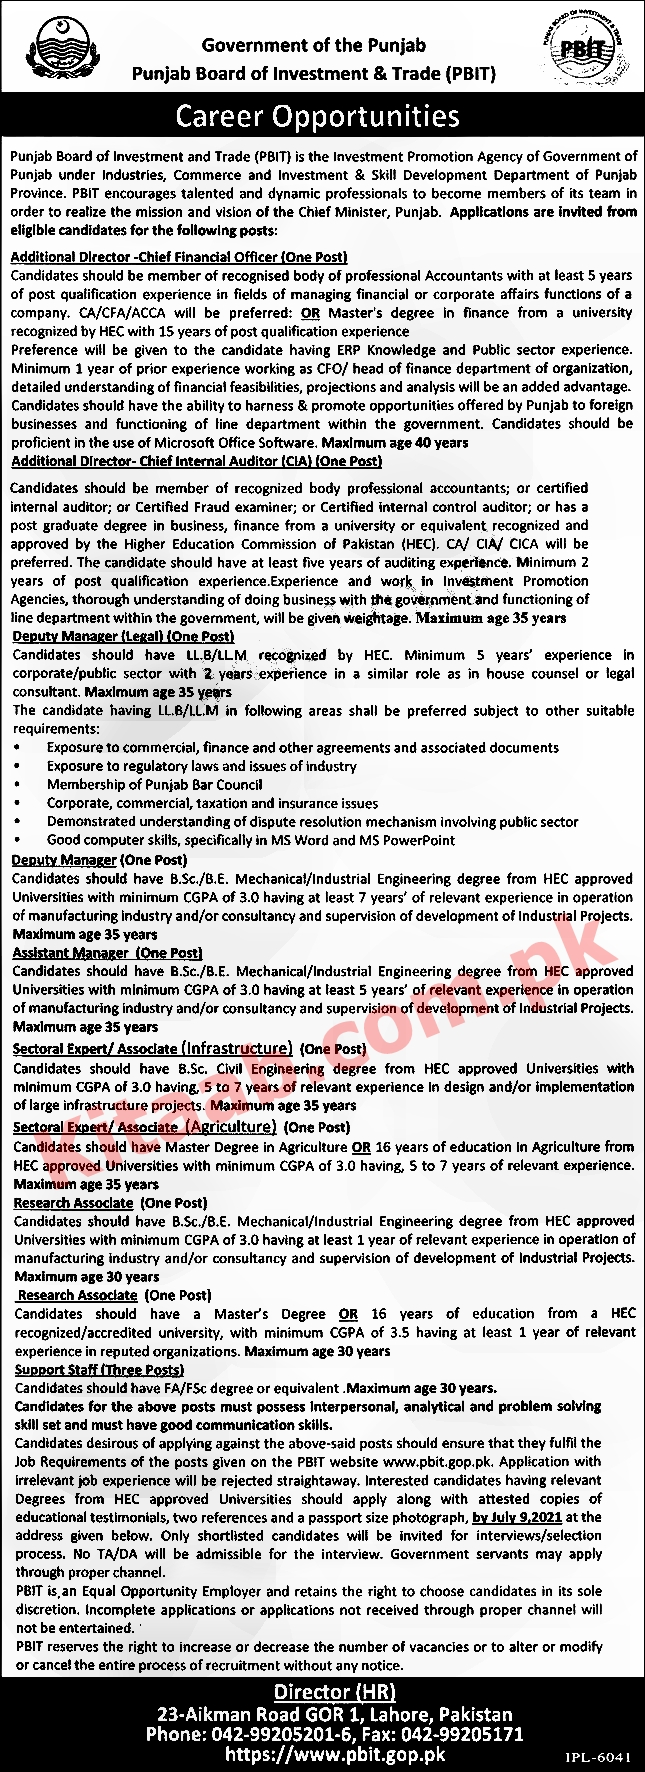 Punjab Board Of Investment And Trade PBIT Jobs 2021 Application Form Last Date